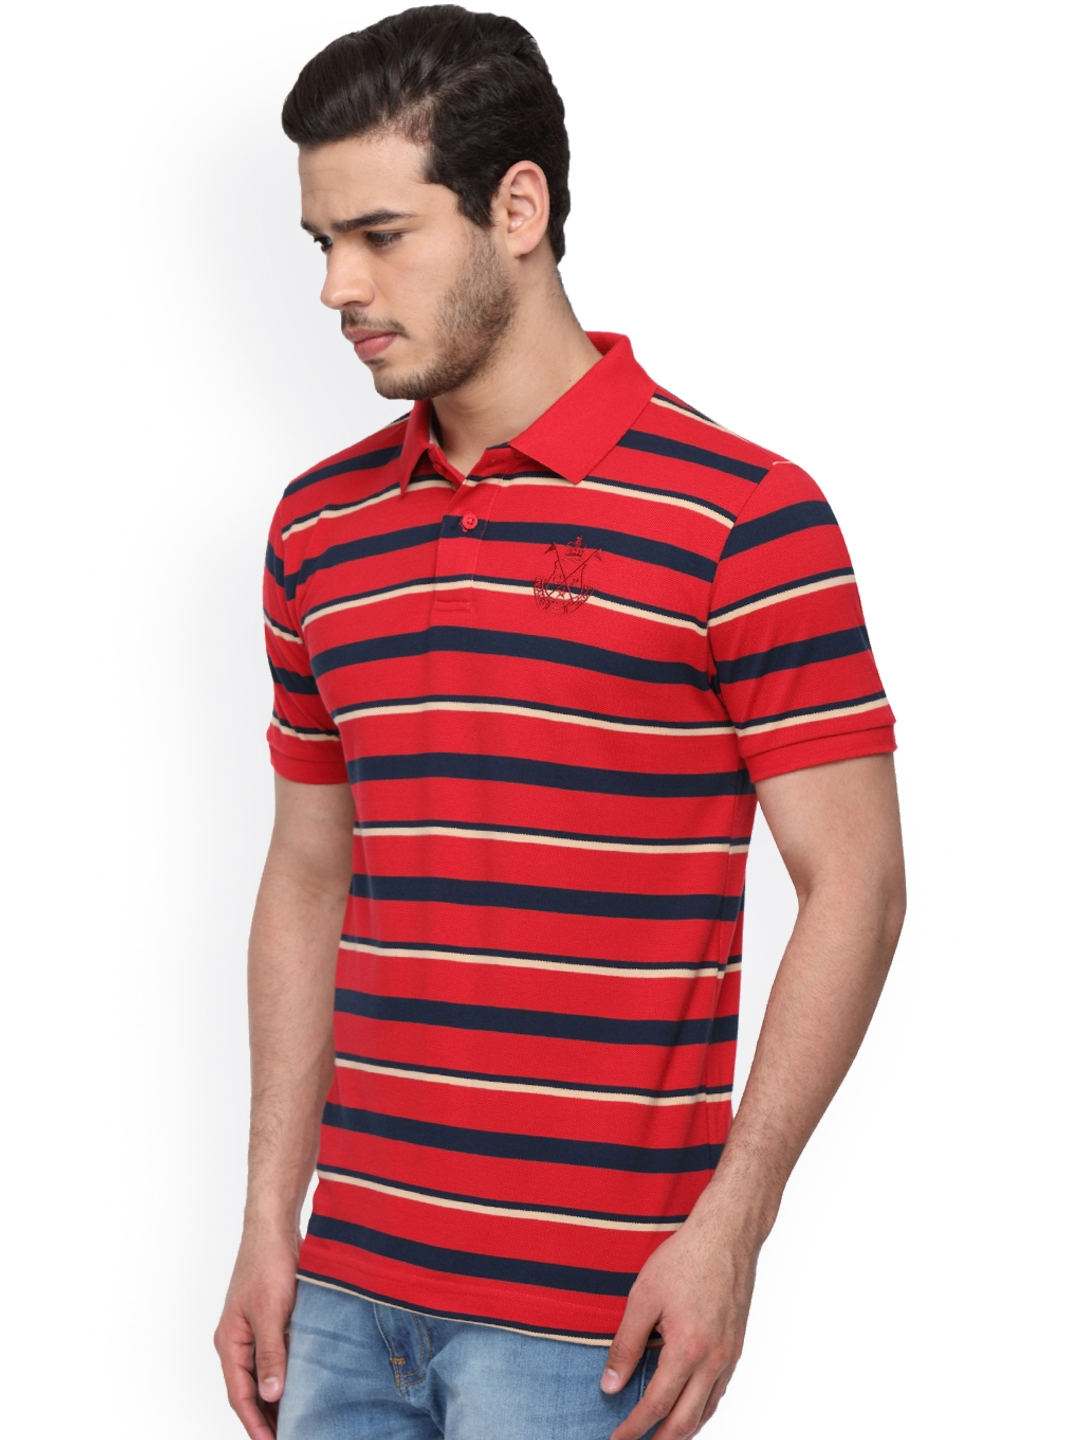 71e400098 Buy Classic Polo Men Red Striped Slim Fit Polo Collar T Shirt ...